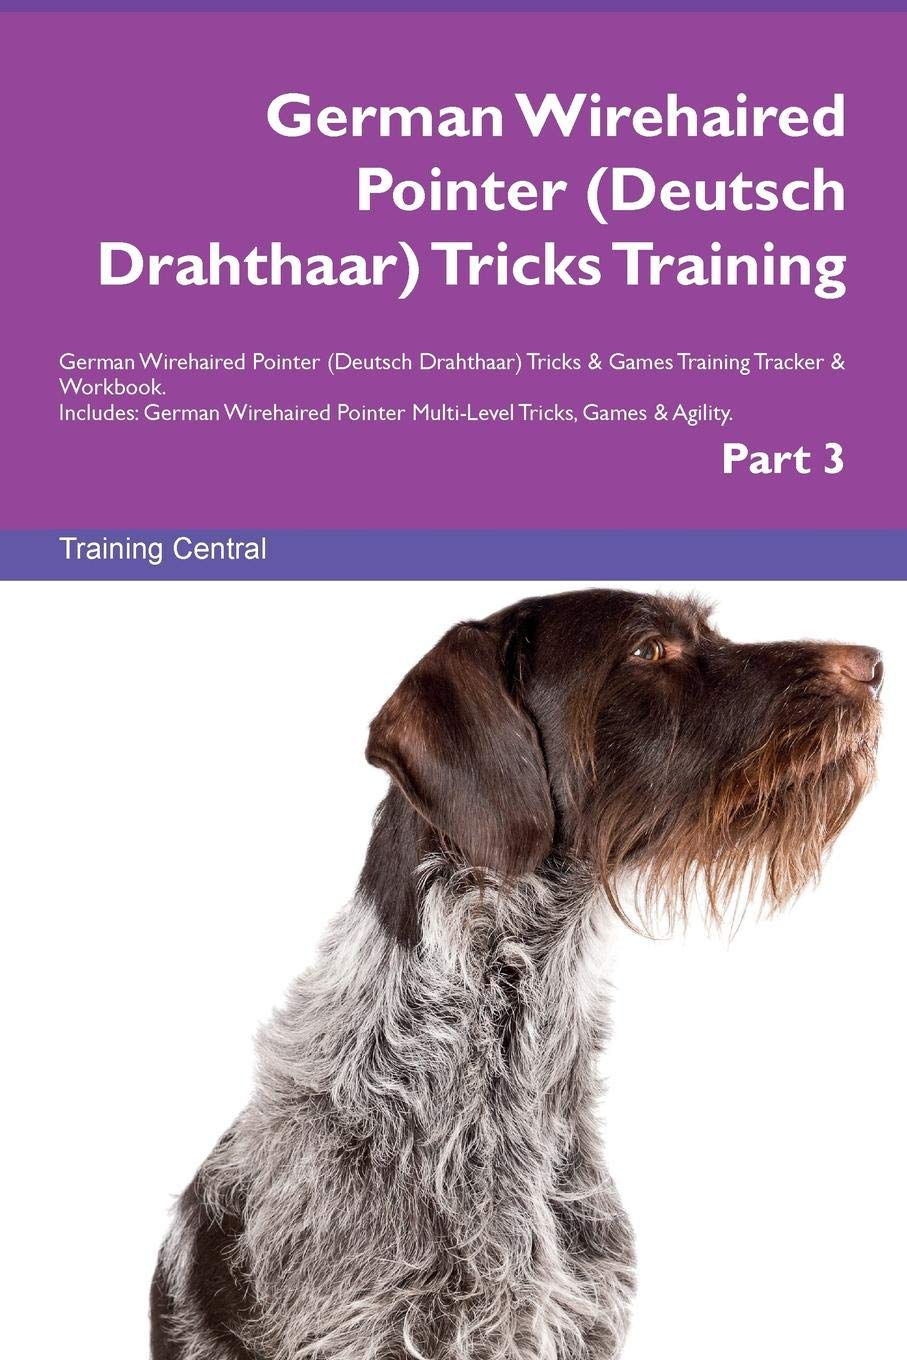 Download German Wirehaired Pointer (Deutsch Drahthaar) Tricks Training German Wirehaired Pointer (Deutsch Drahthaar) Tricks & Games Training Tracker & ... Multi-Level Tricks, Games & Agility. Part 3 pdf epub